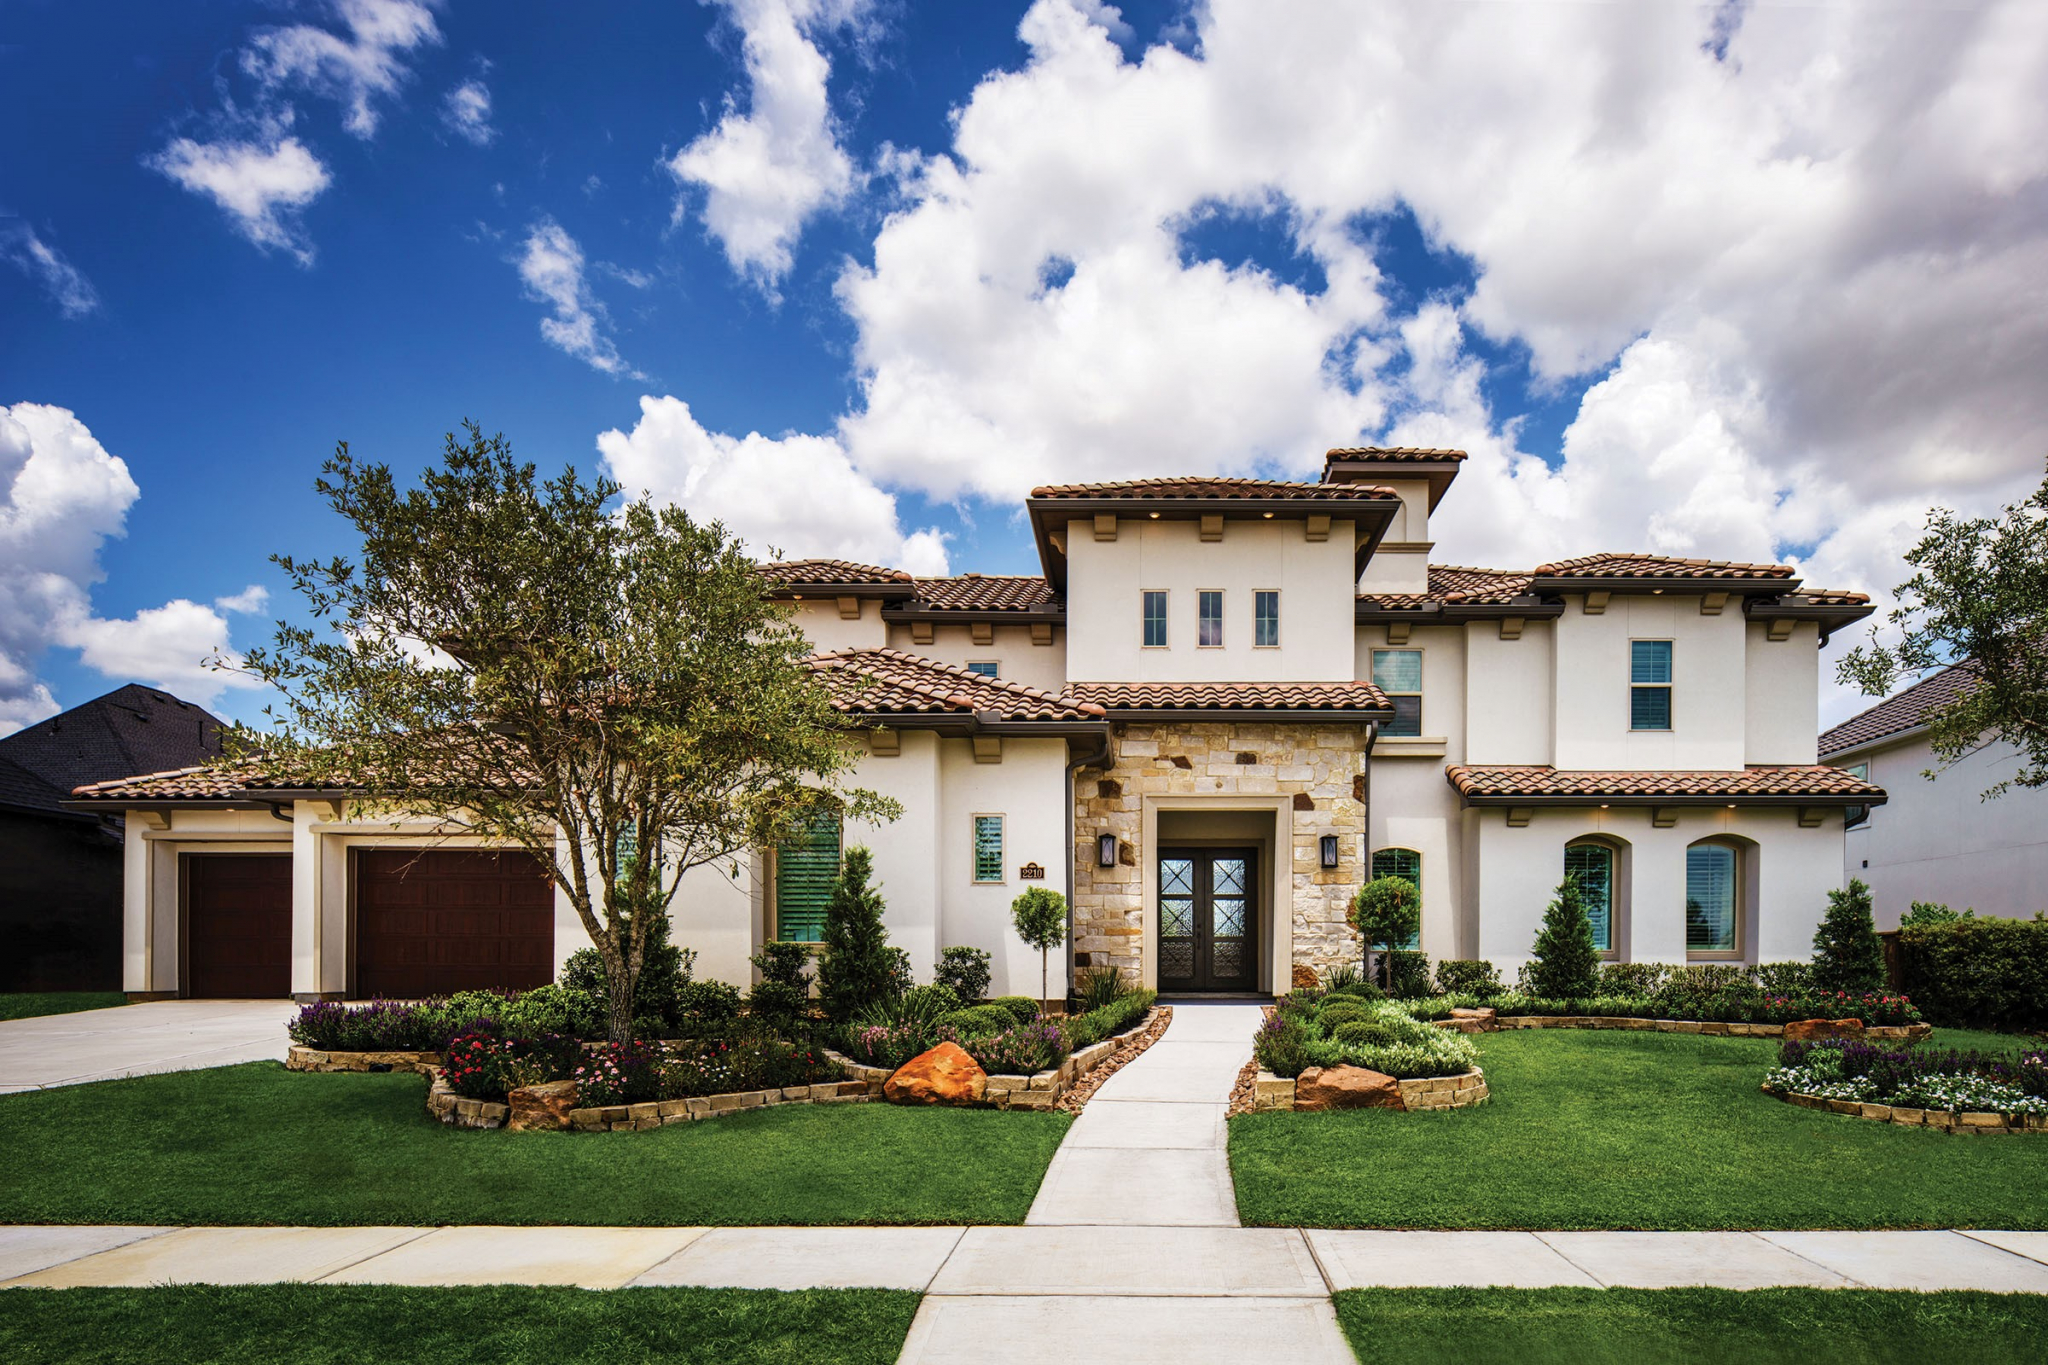 Partners in Building opens grand model home in Katy's Cane Island